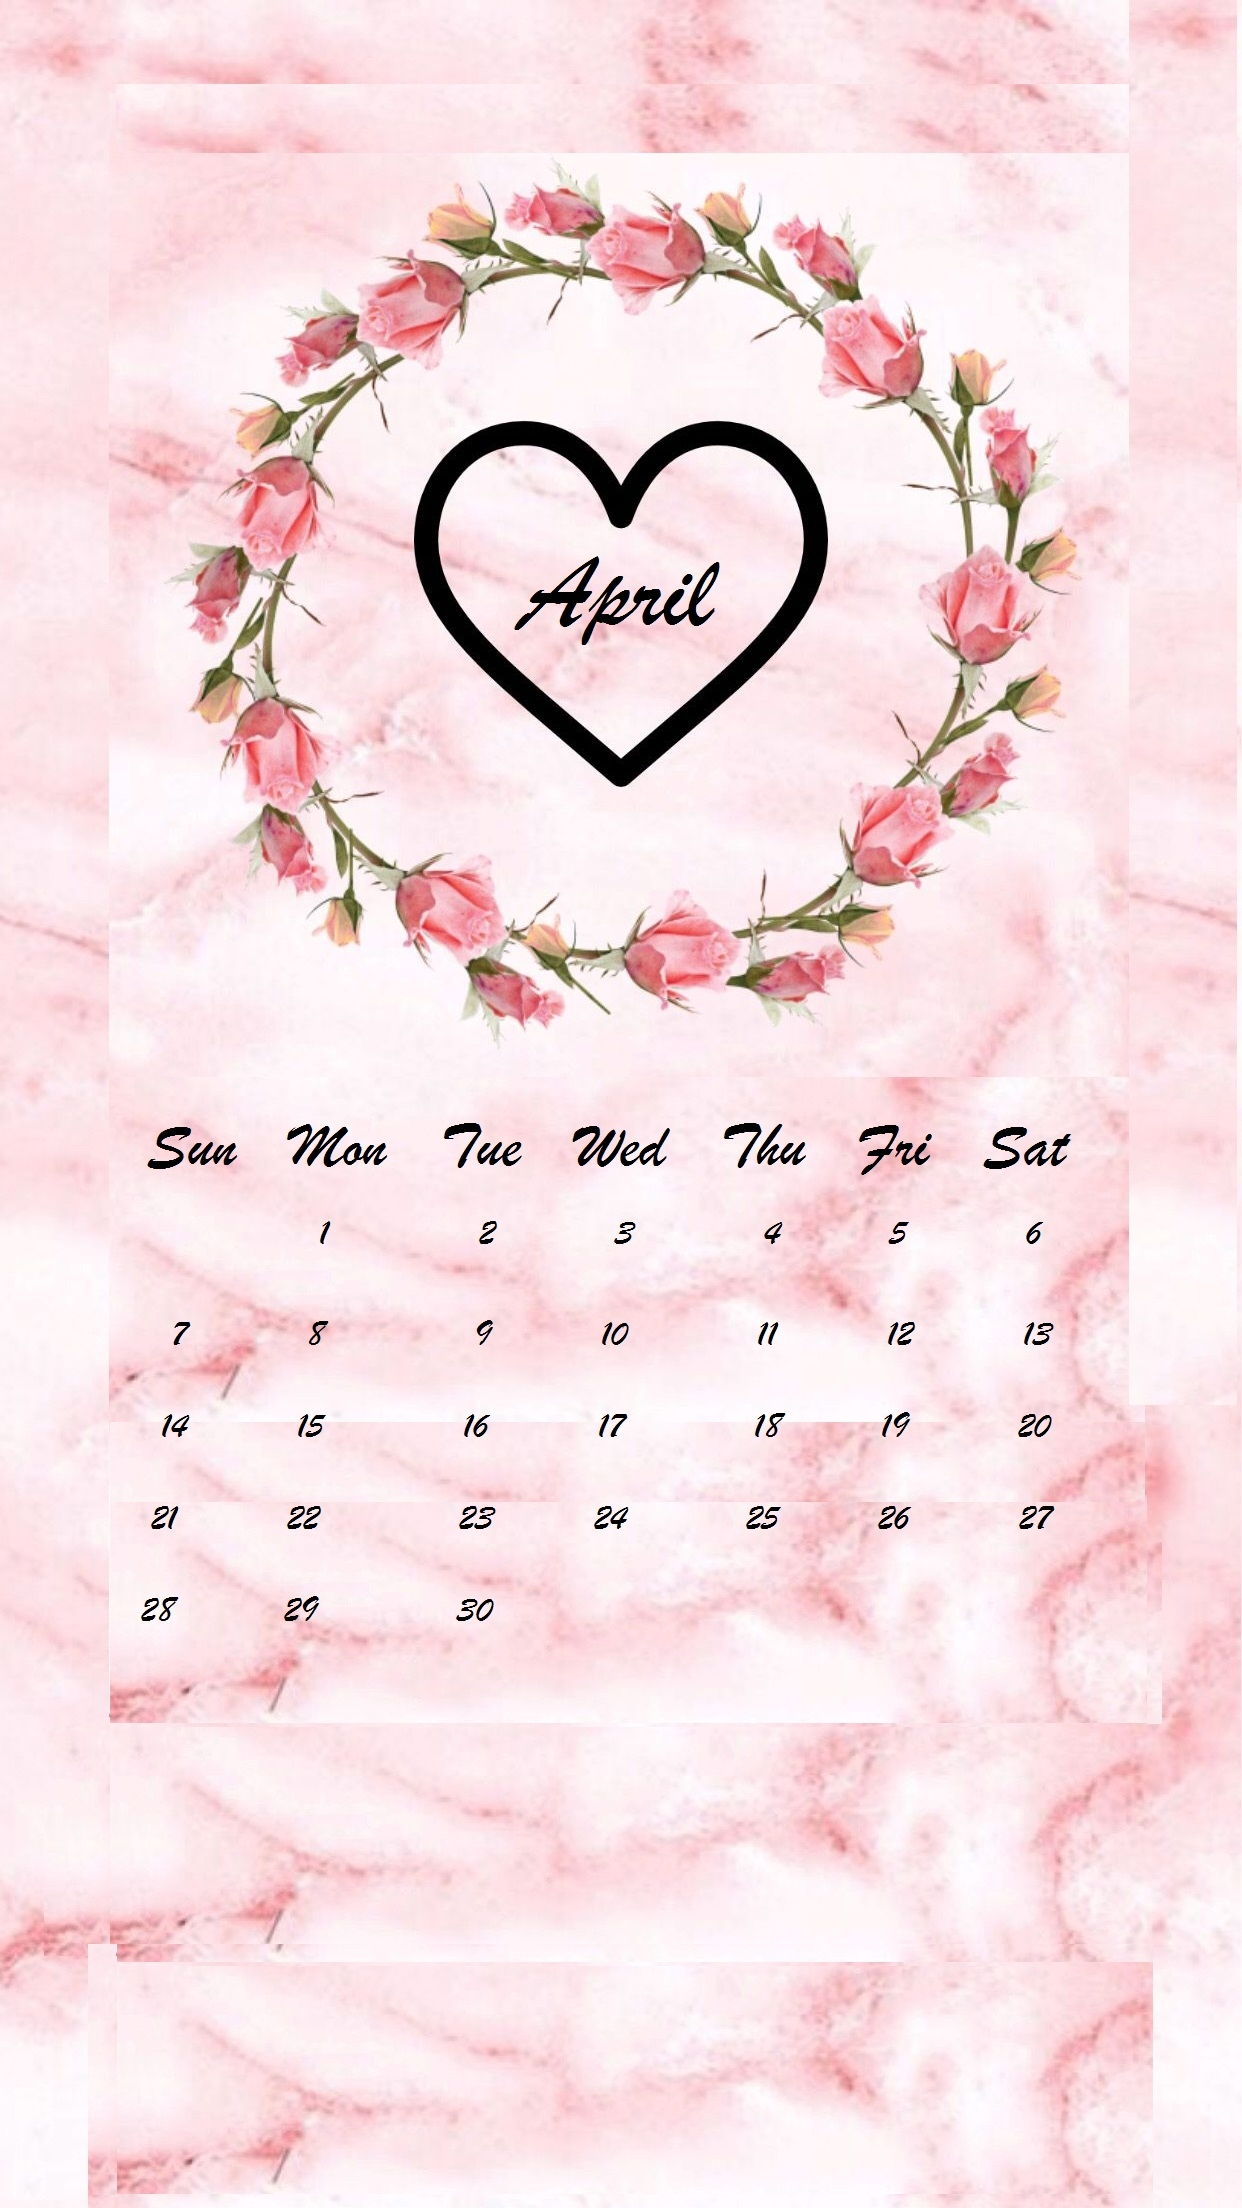 april 2019 iphone calendar wallpaper::April 2019 iPhone Calendar